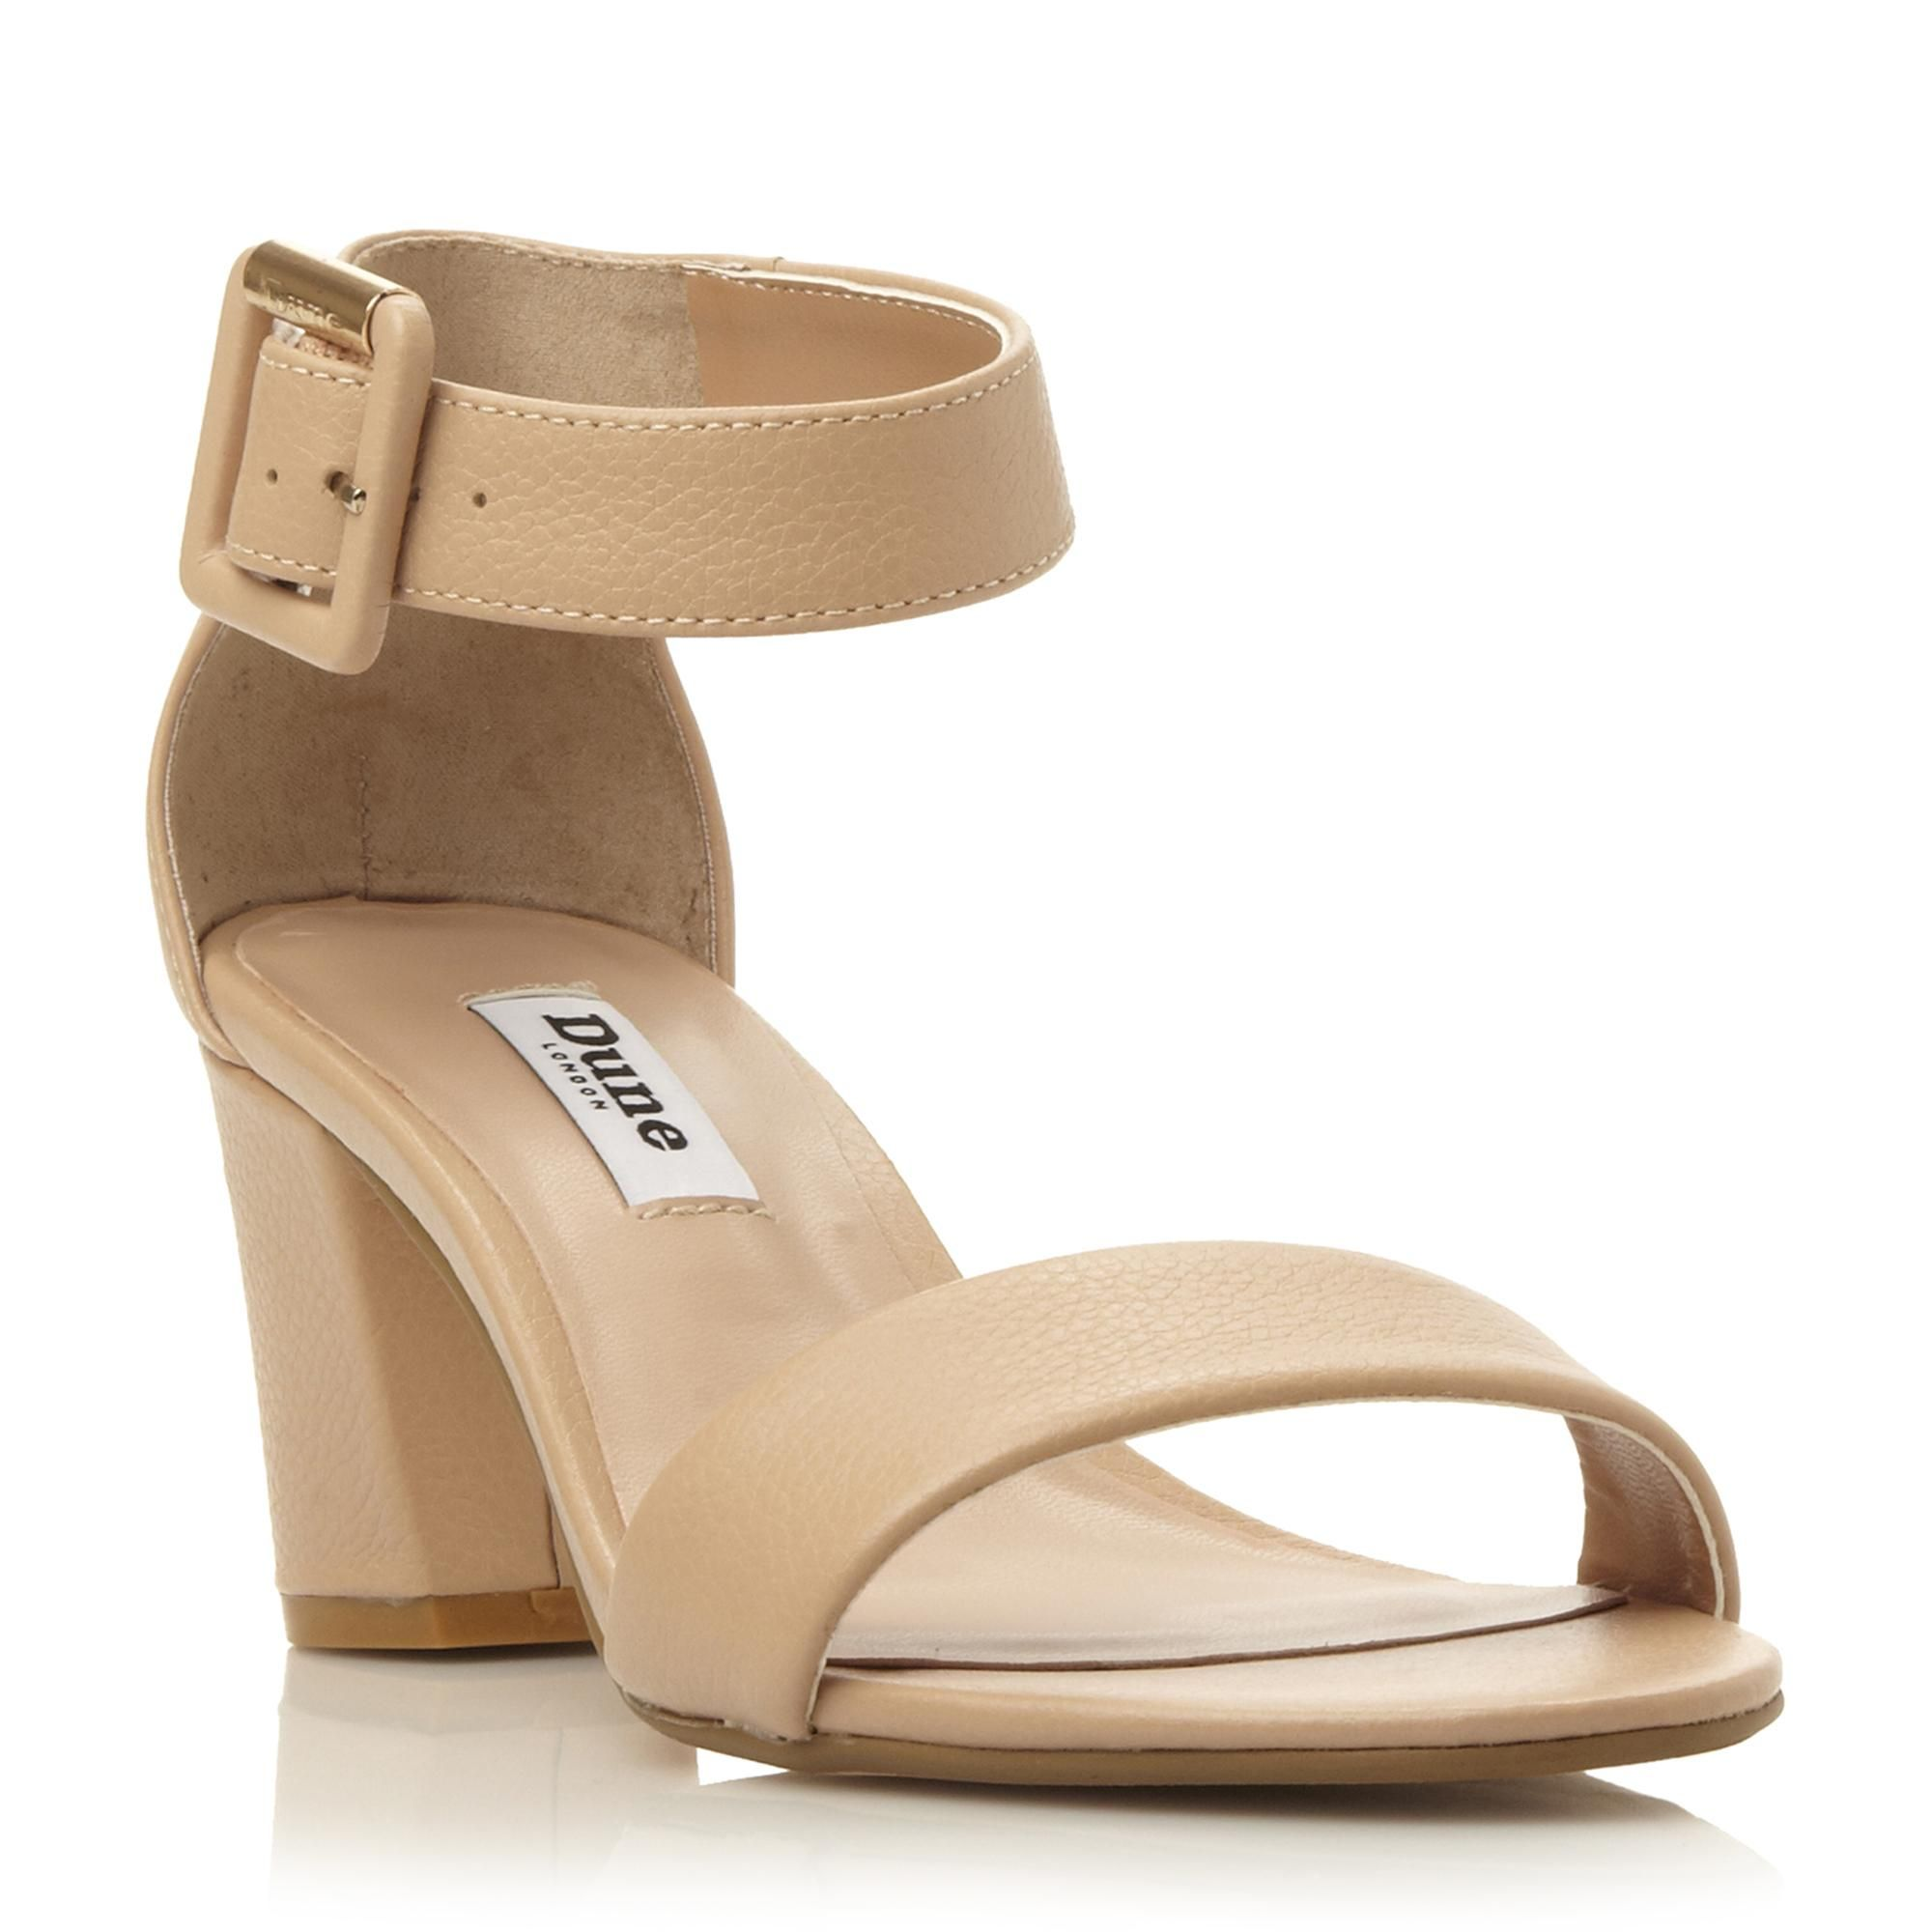 Buy block heels online in India at hereuloadu5.ga Select from a large variety of block heels and get free shipping, cash on delivery & 15 days return on block heels shopping.